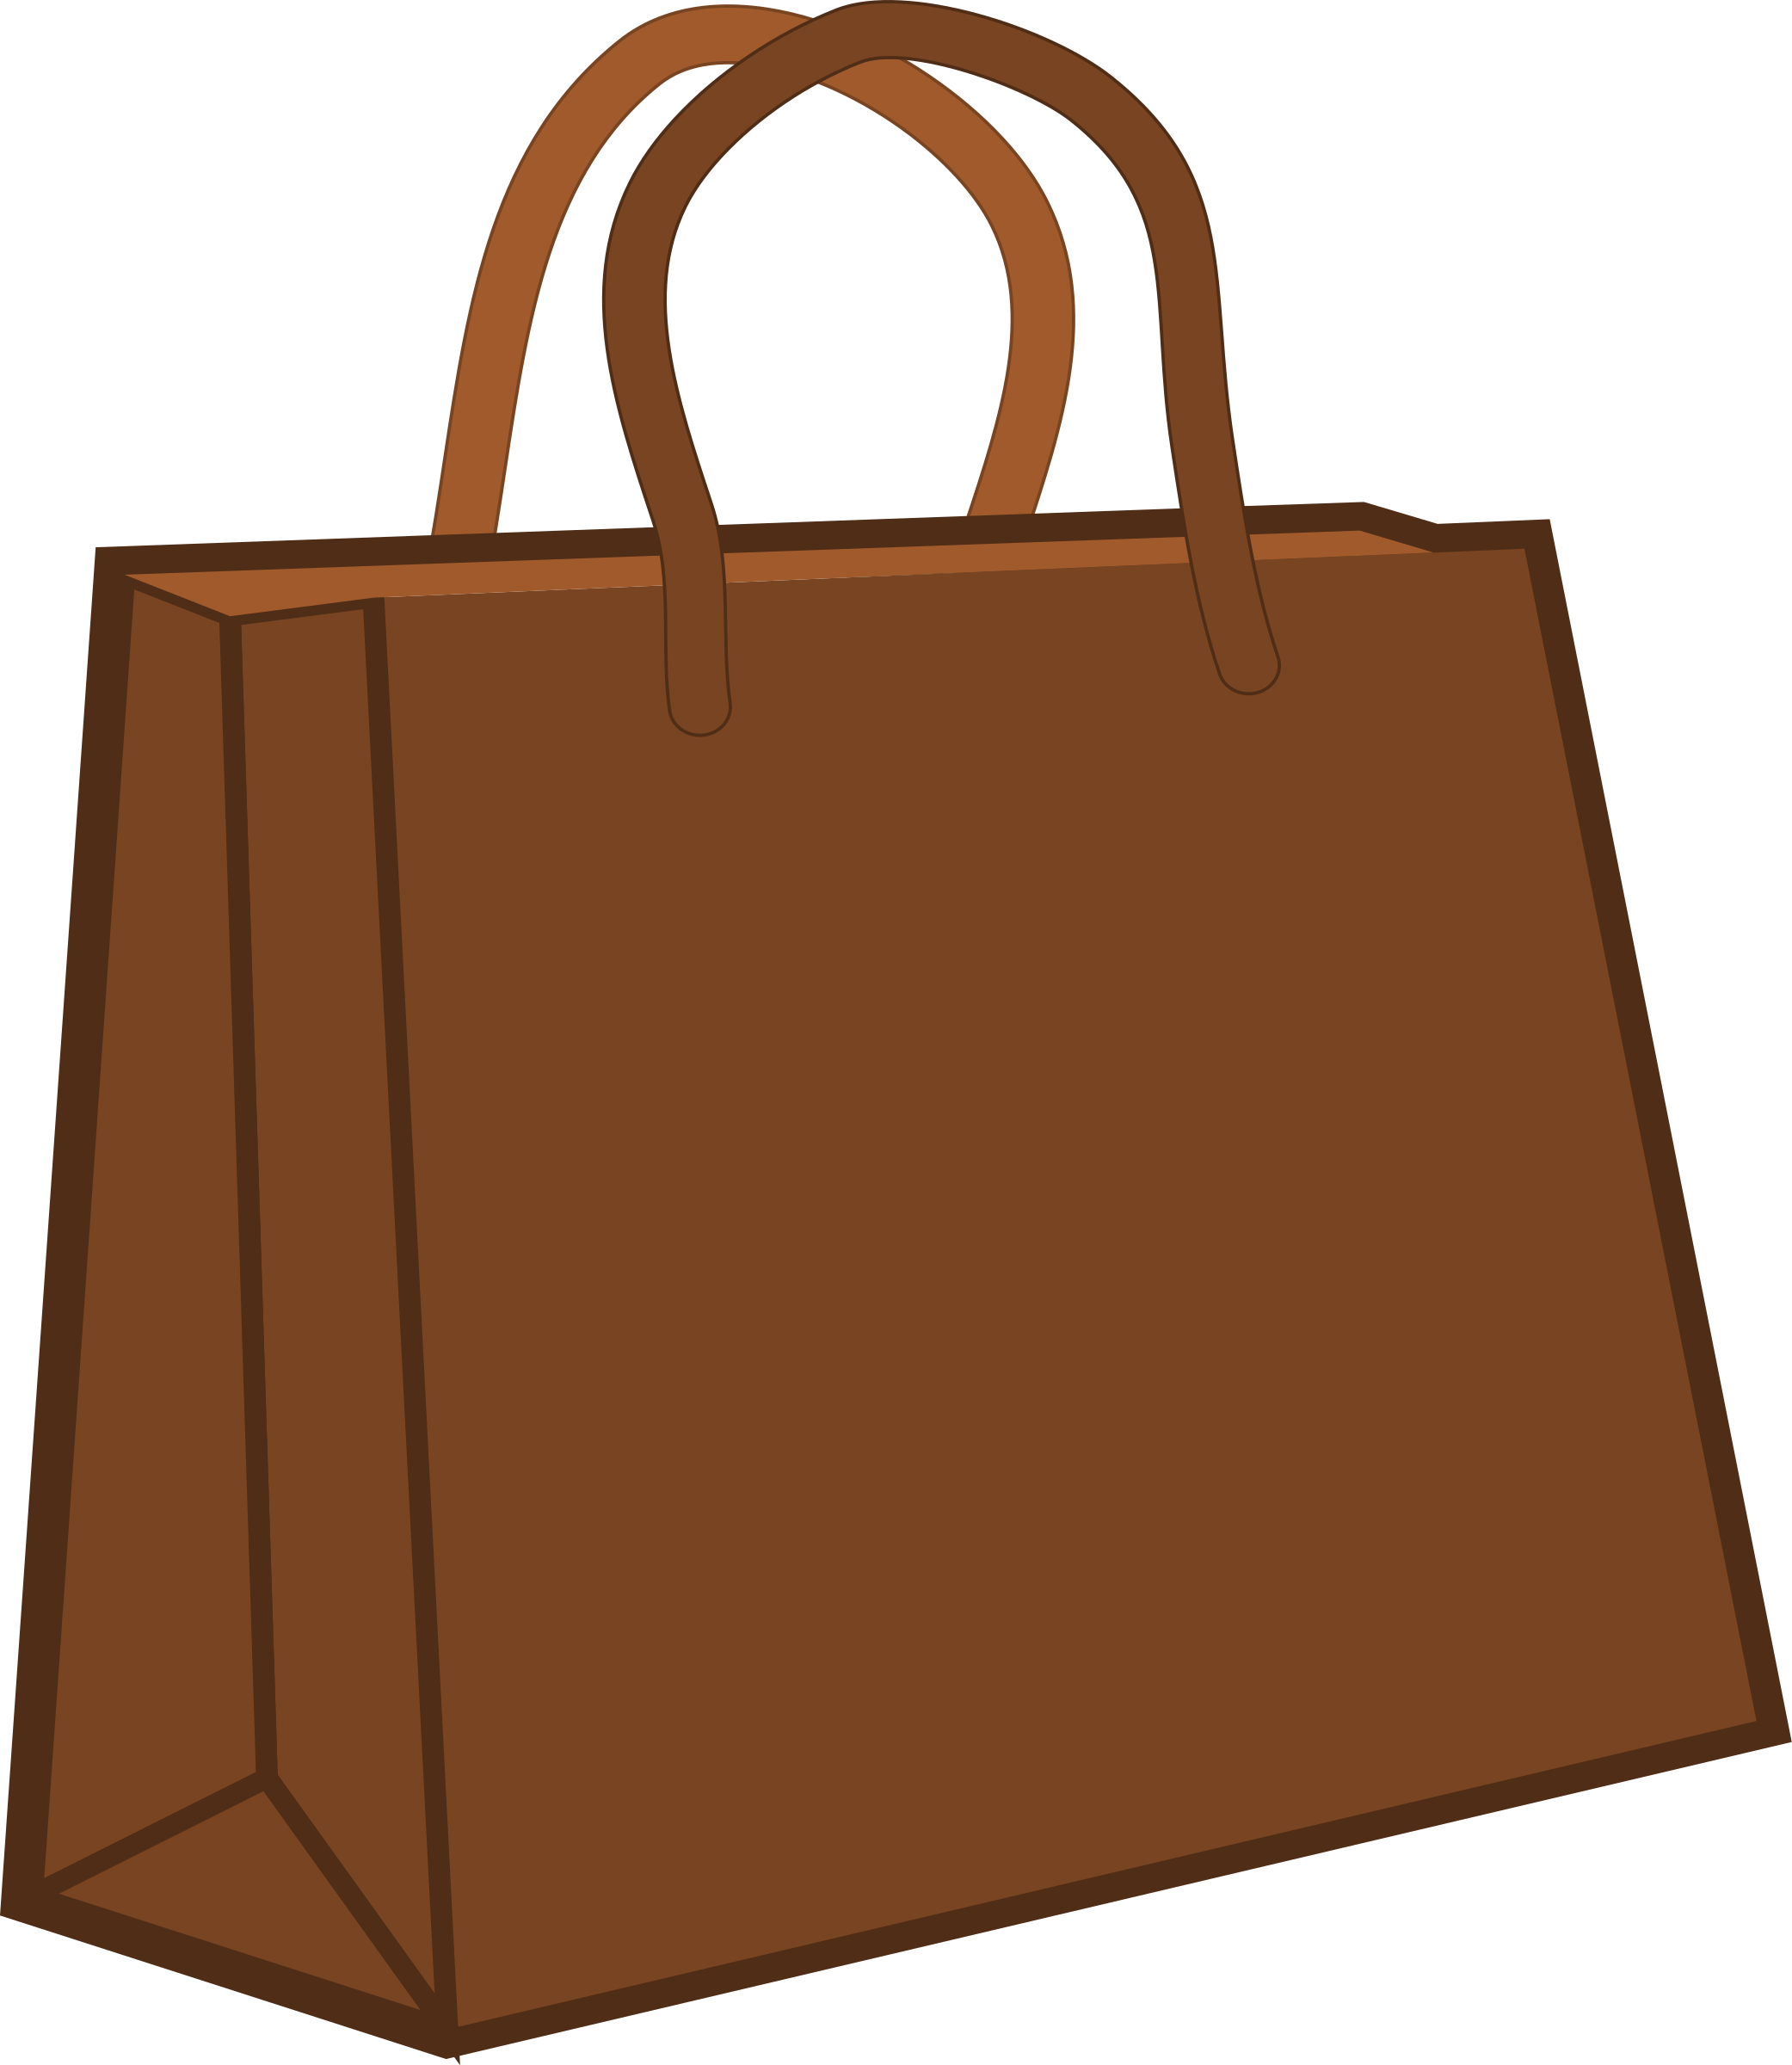 Luggage clipart cute. Shopping bag desktop backgrounds